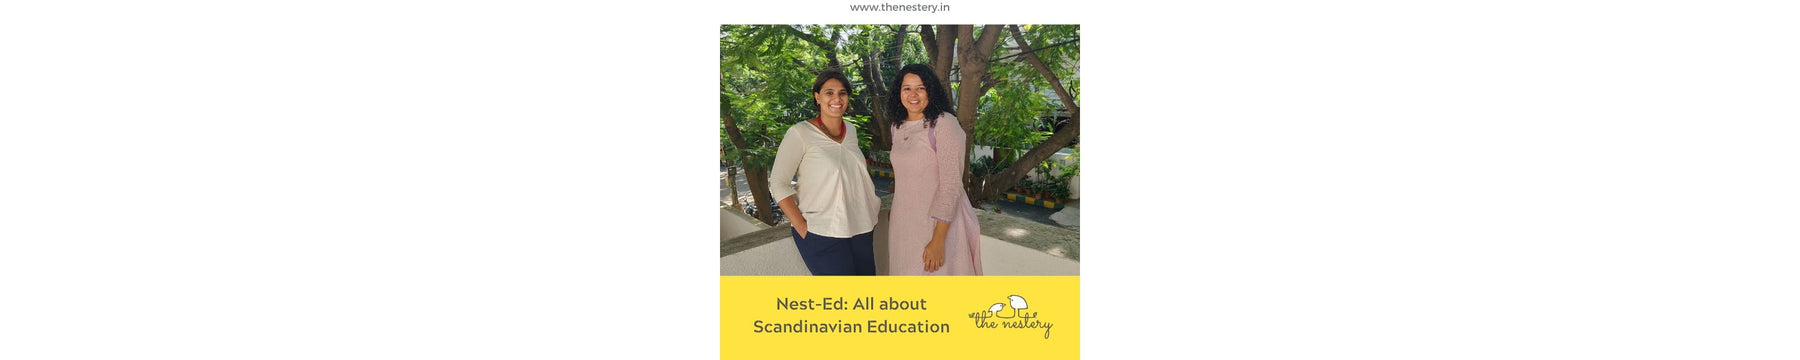 Nest-Ed: Why Scandinavian education creates the happiest children in the world?